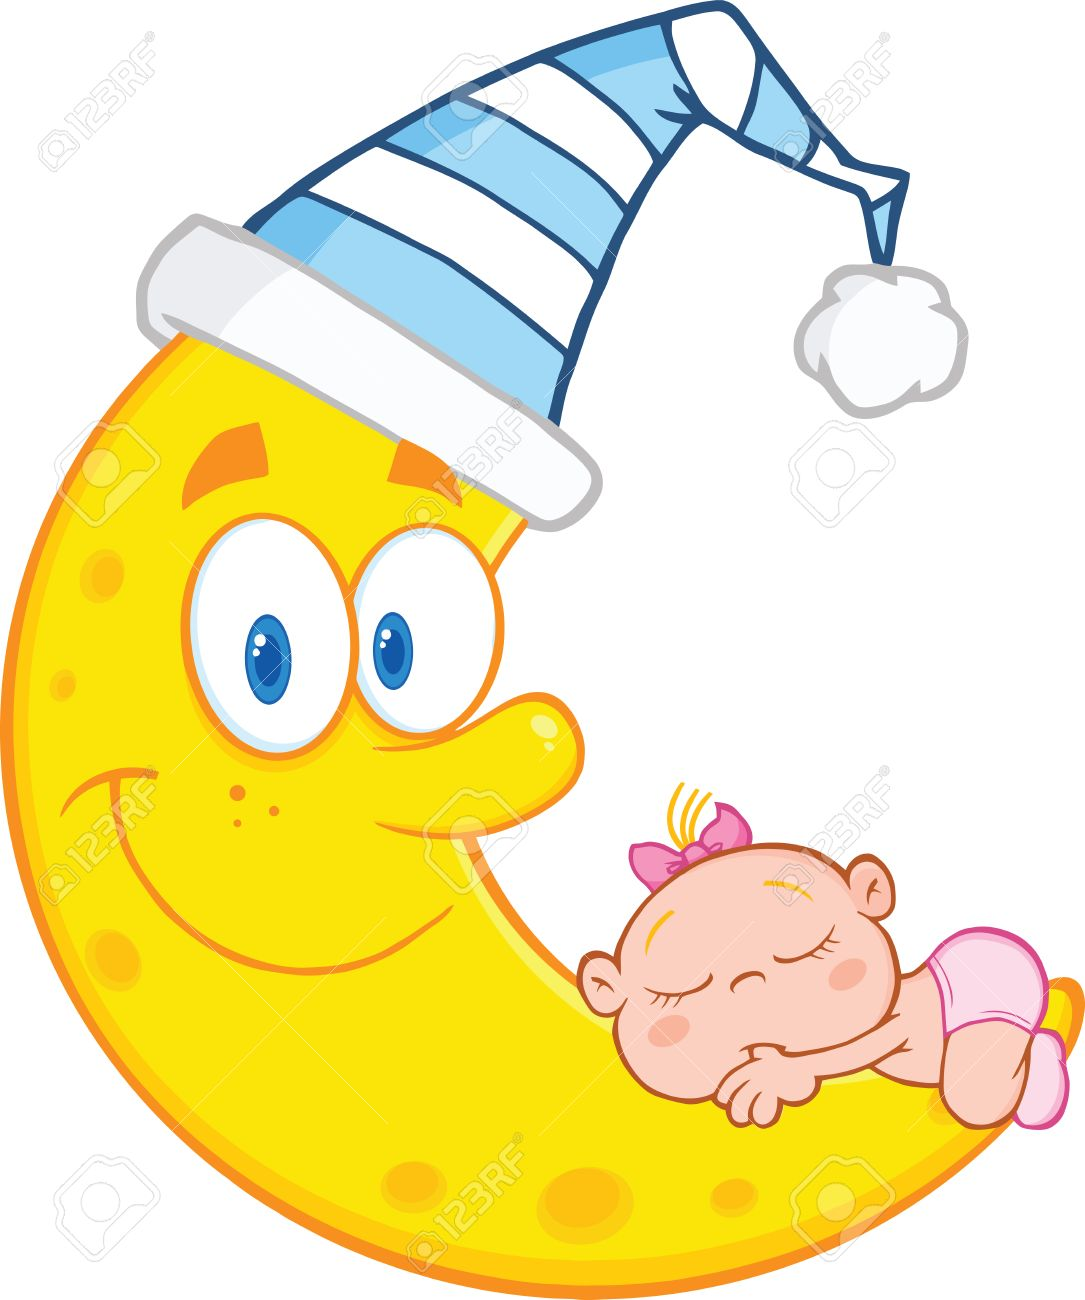 Cute Baby Girl Sleeps On The Smiling Moon With Sleeping Hat Royalty Free Cliparts Vectors And Stock Illustration Image 23979619